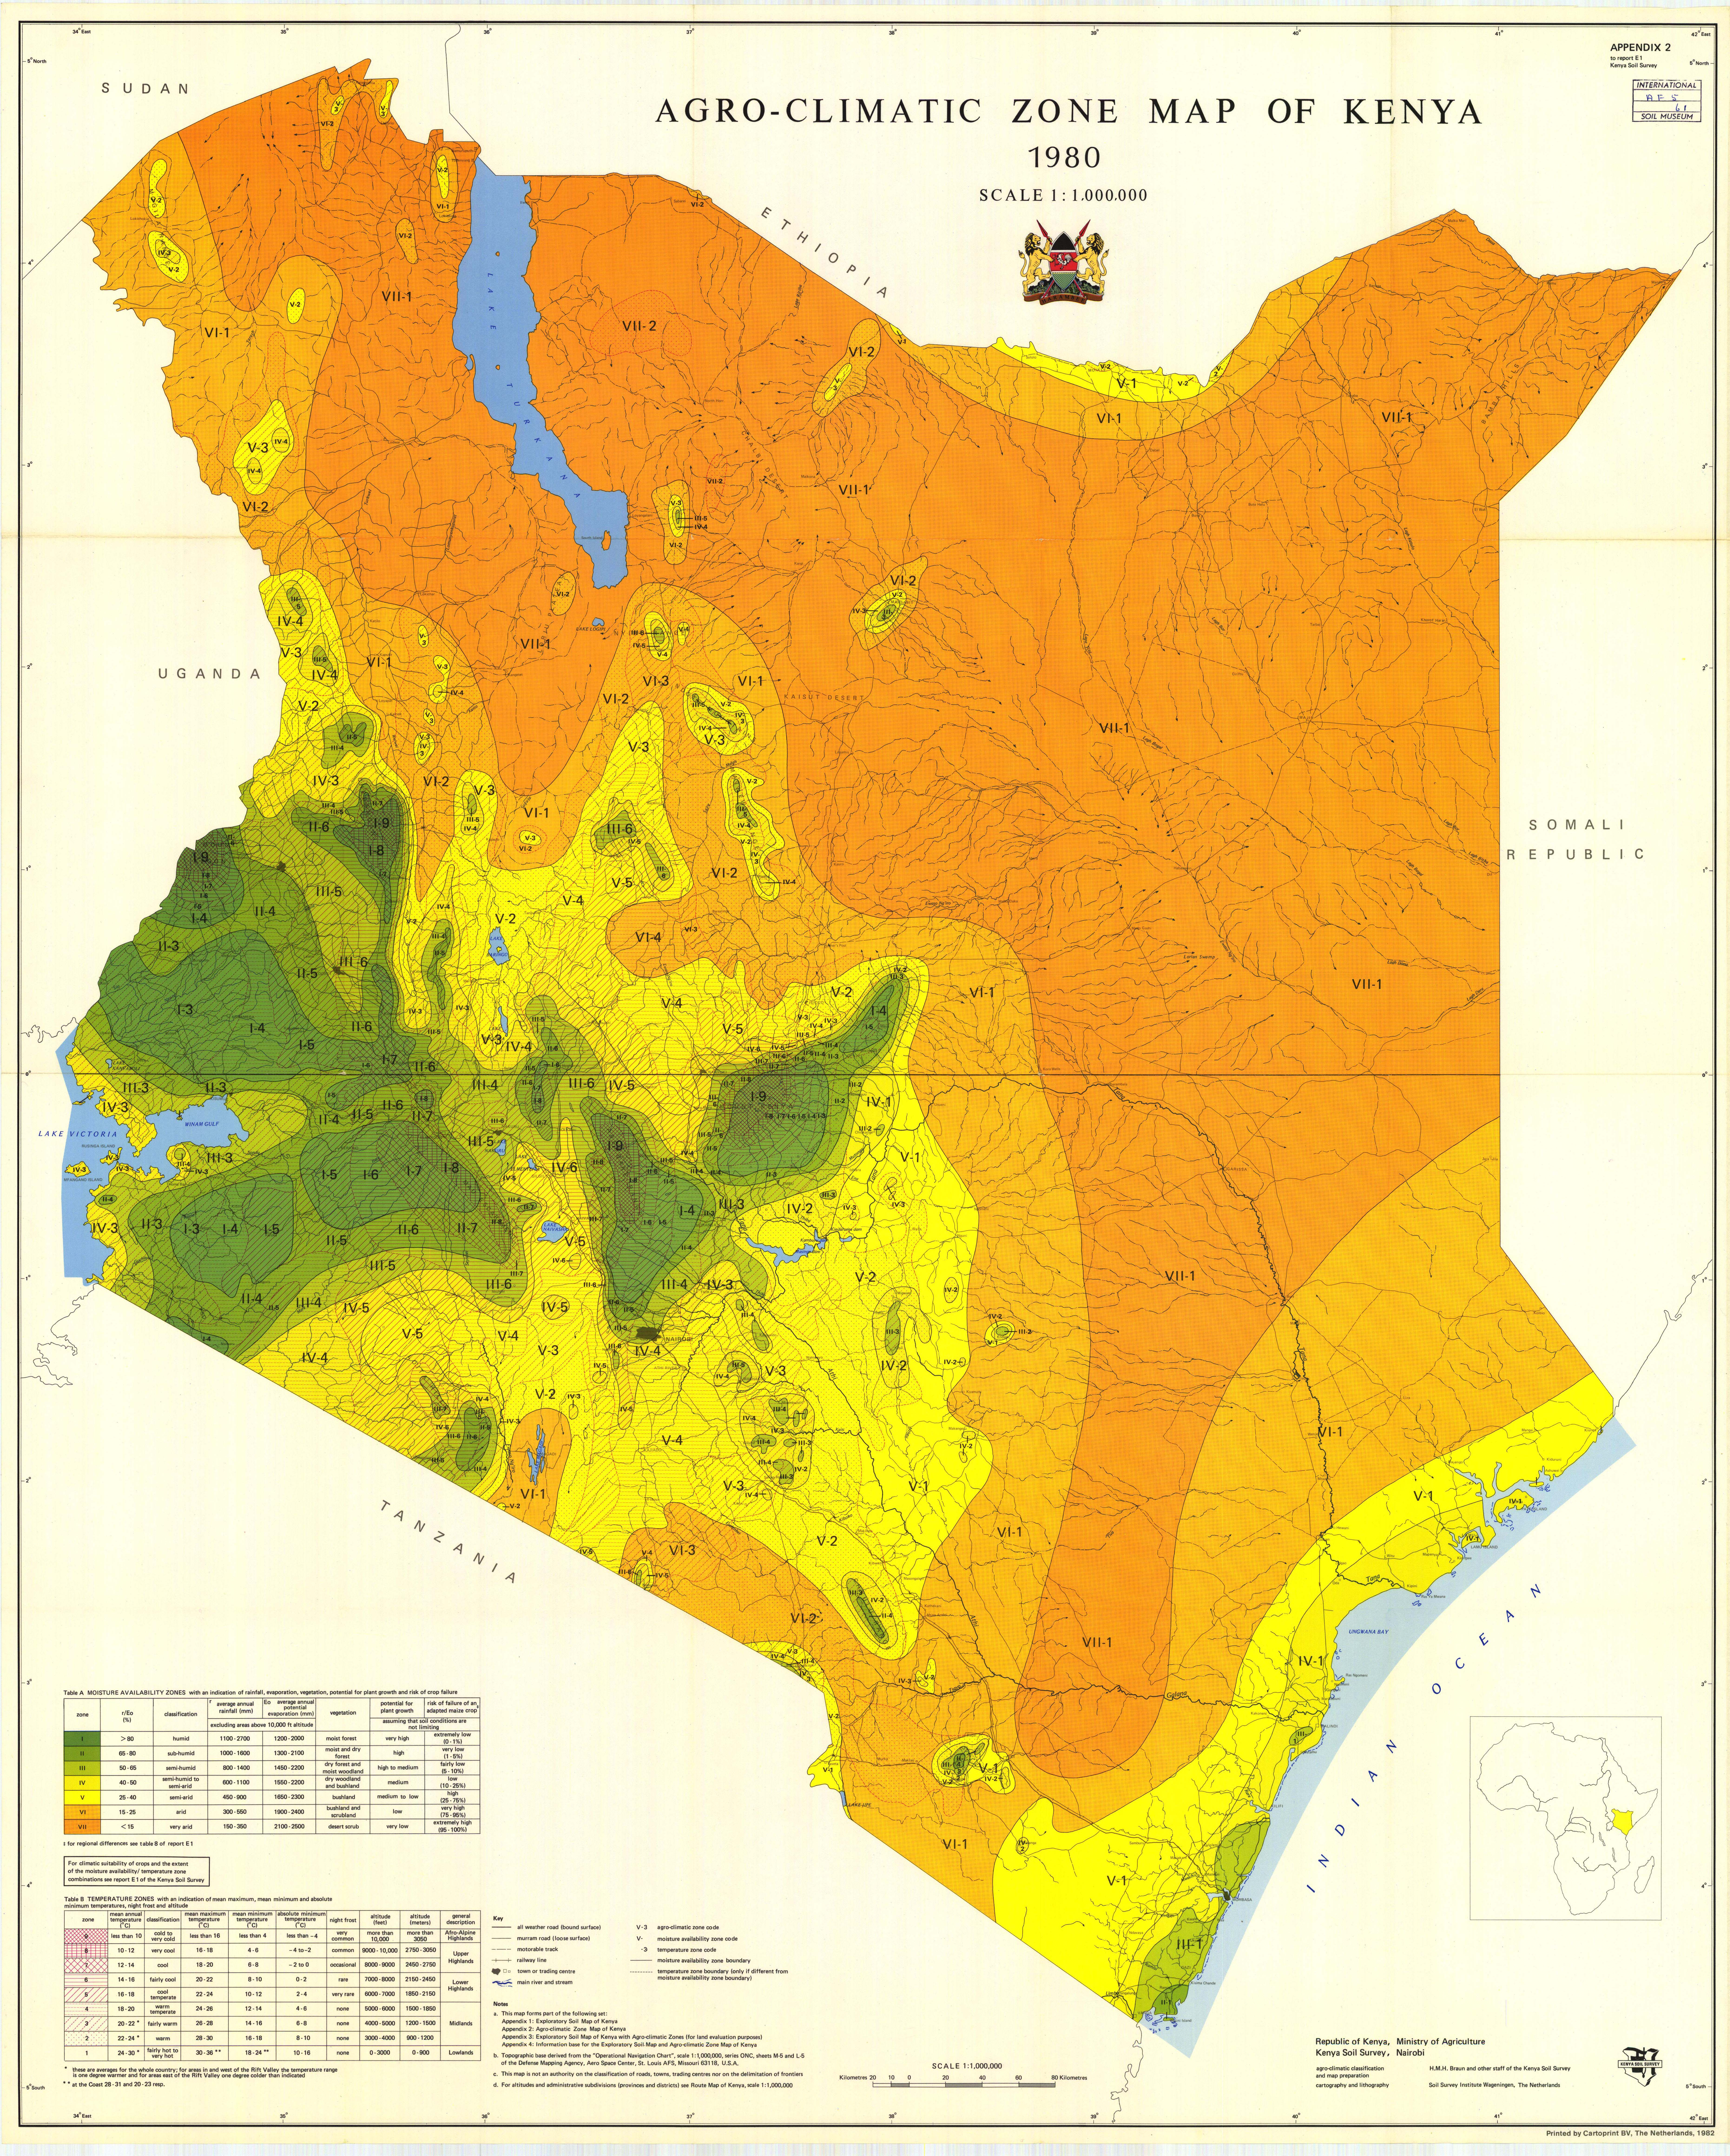 Agro climatic zone map of kenya appendix 2 to report no e1 agro climatic zone map of kenya appendix 2 to report no e1 gumiabroncs Choice Image